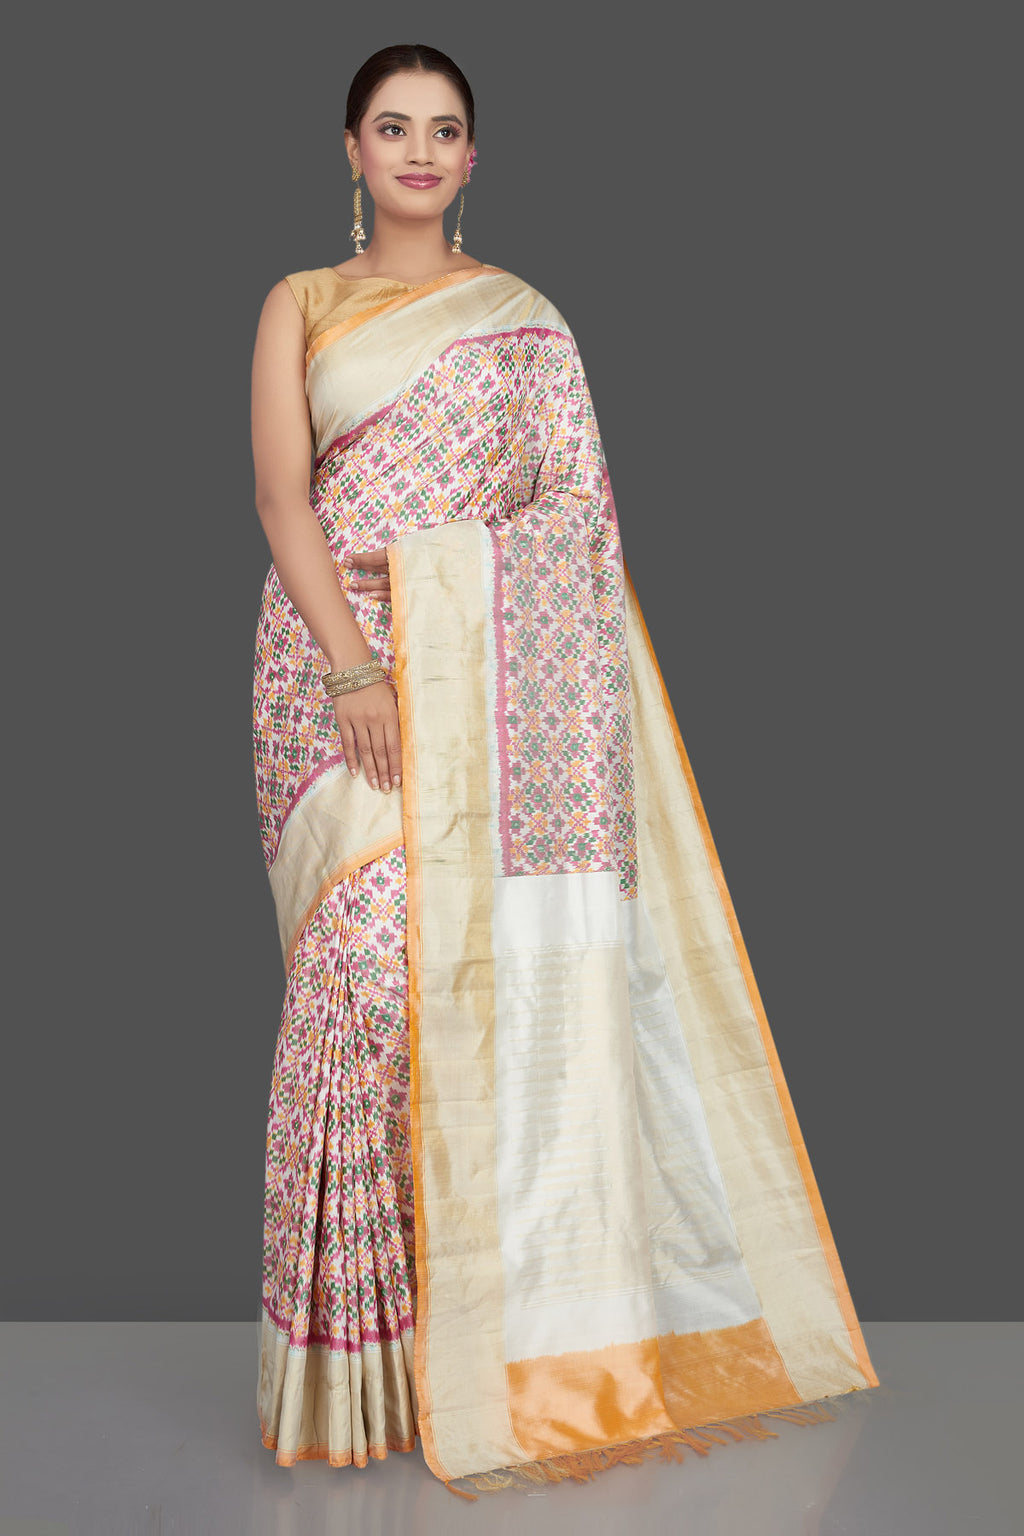 Buy beautiful cream ikkat silk saree online in USA with golden zari border. Get ready for festive occasions in exclusive silk sarees, ikkat saris, Kanchipuram silk sarees, designer sarees from Pure Elegance Indian sarees store in USA.-full view